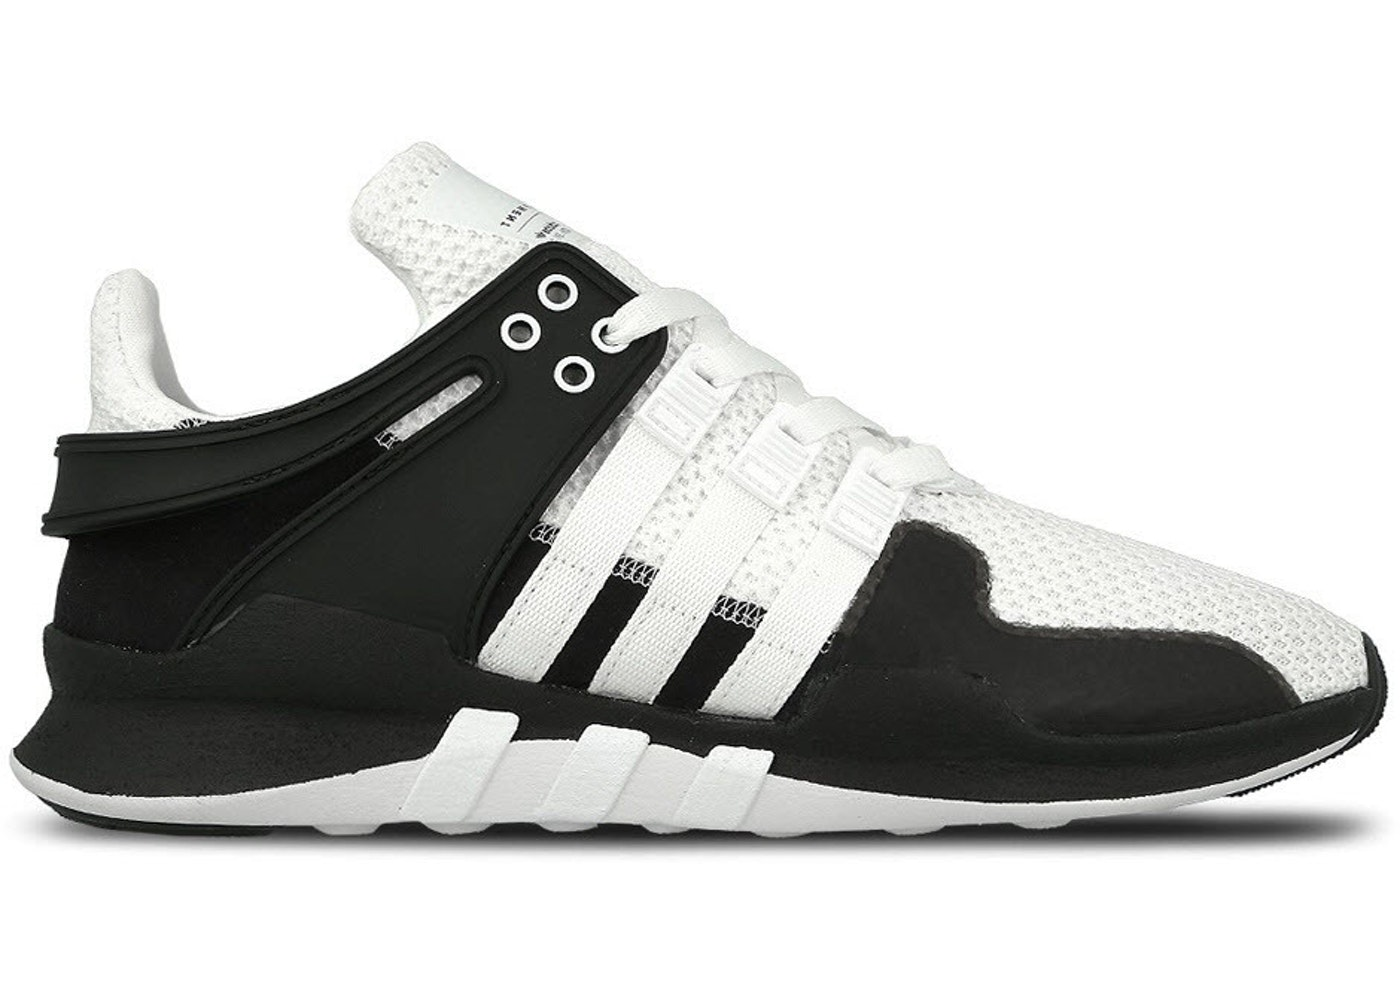 "adidas EQT Support ADV 91 16 ""Black/White Sneaker Bar Detroit"